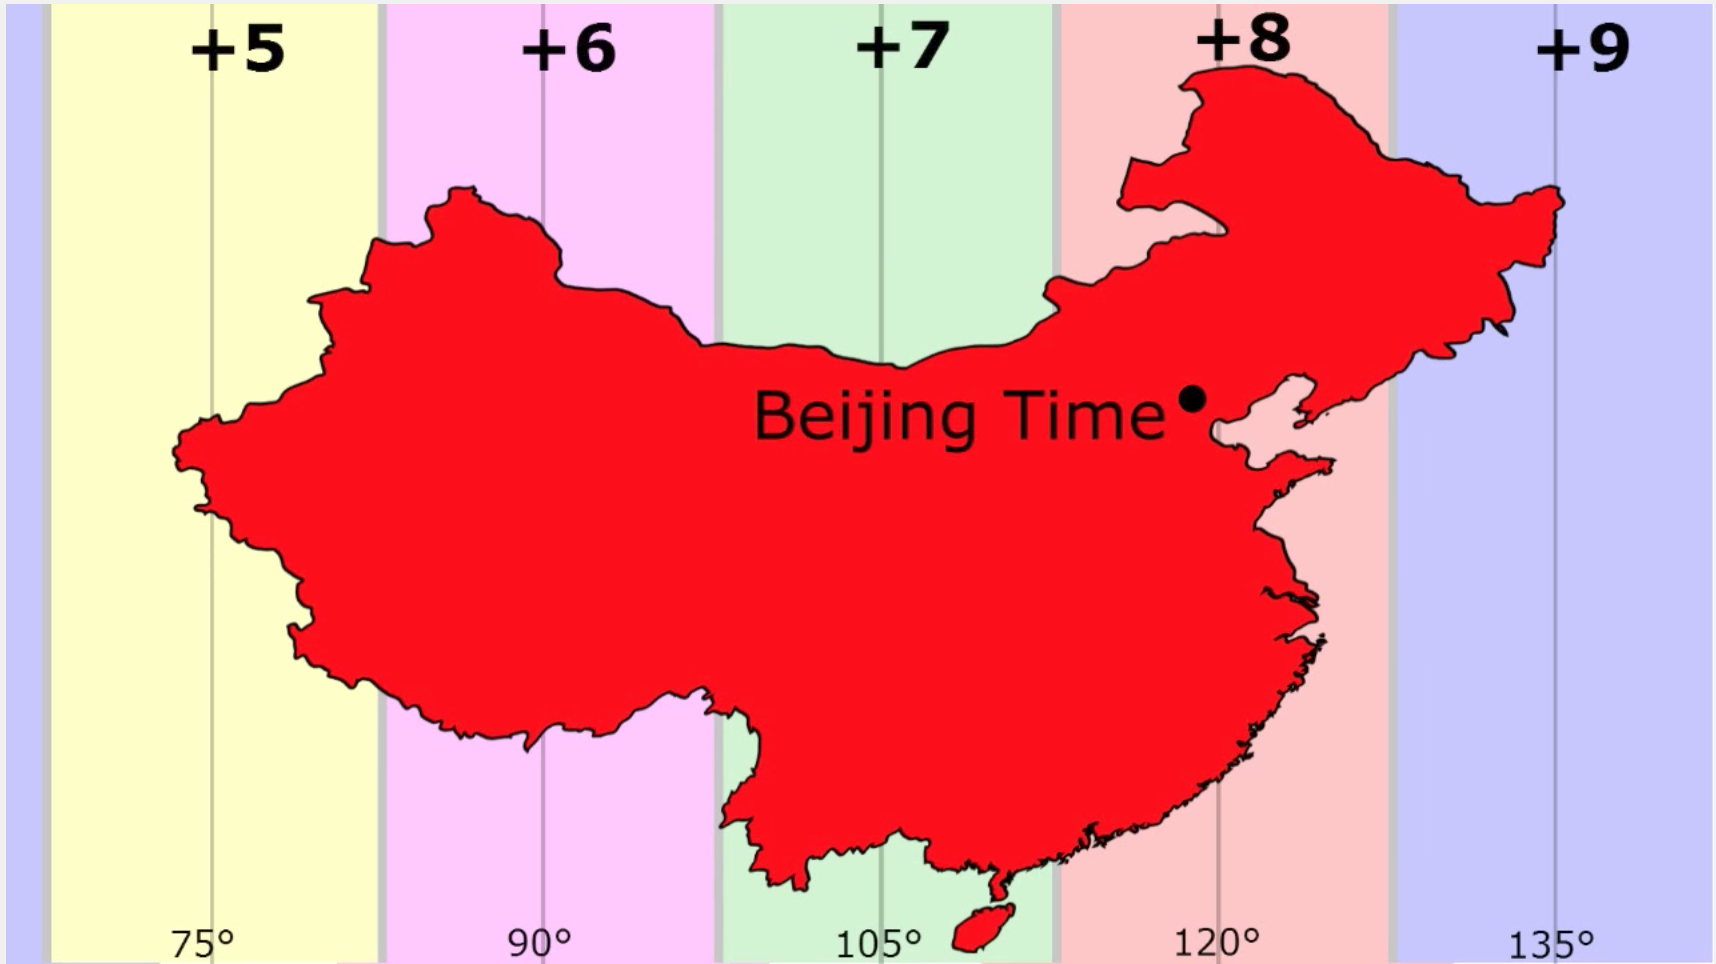 time zones in china map Time Zones We Think Of Time Zones As Simple By Davis Treybig Five Guys Facts Medium